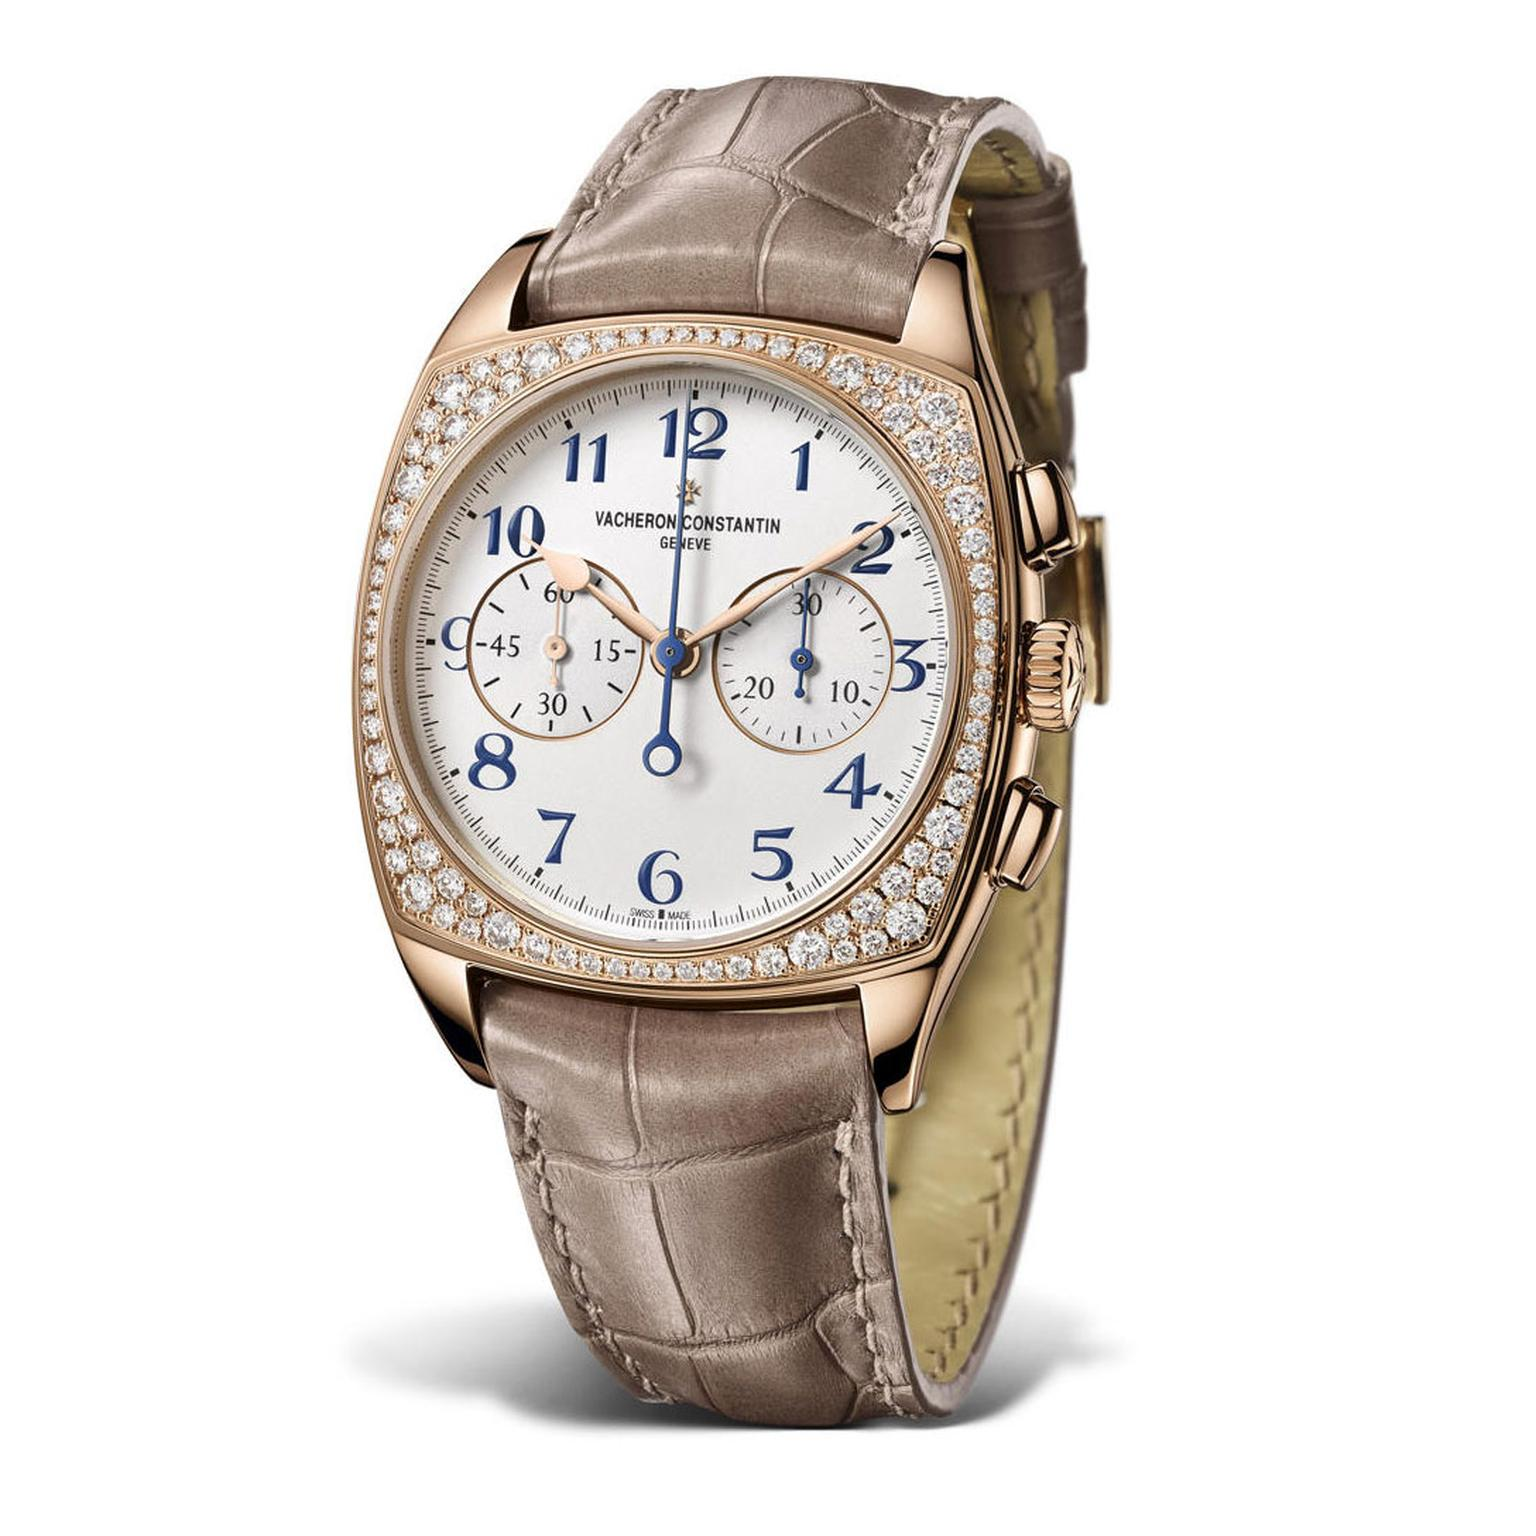 Vacheron Constantin Harmony Chronograph watch